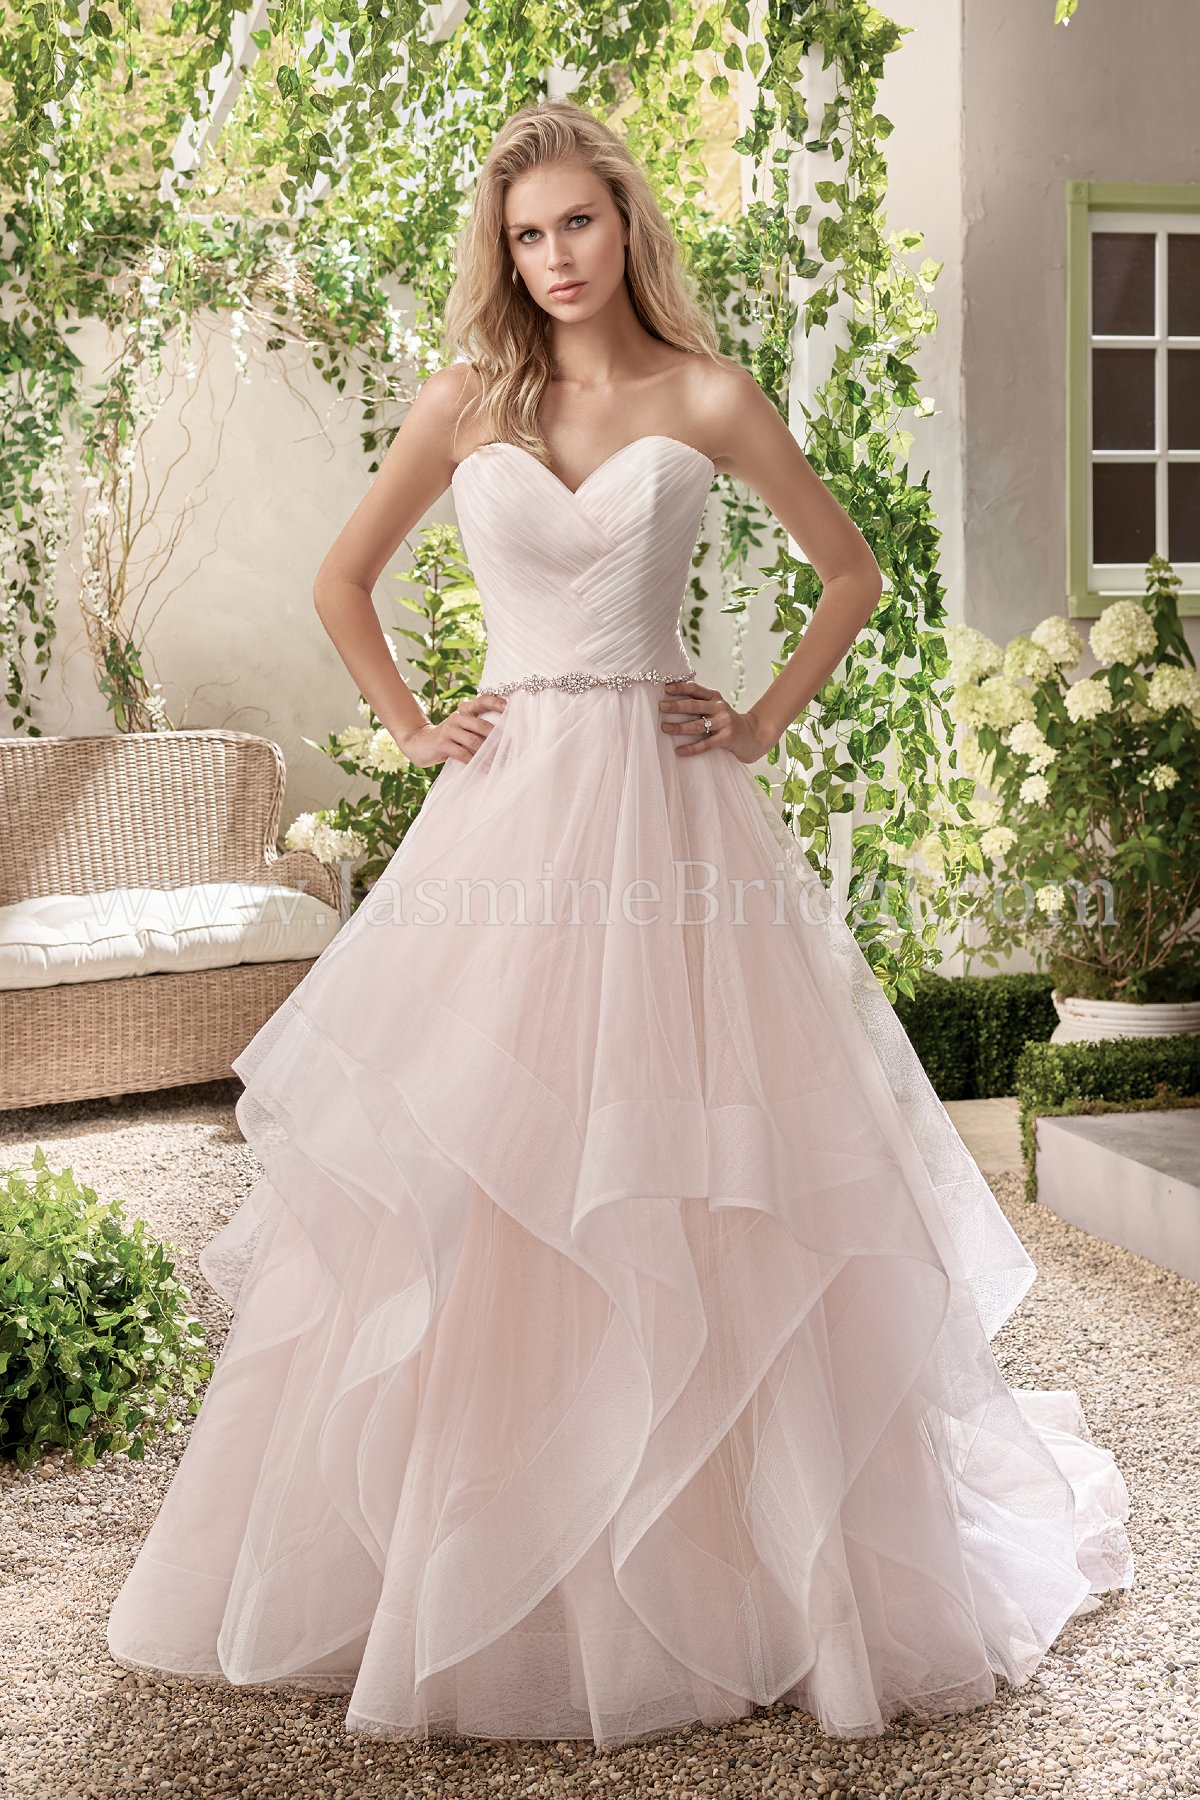 Ruffled Tulle Wedding Dress